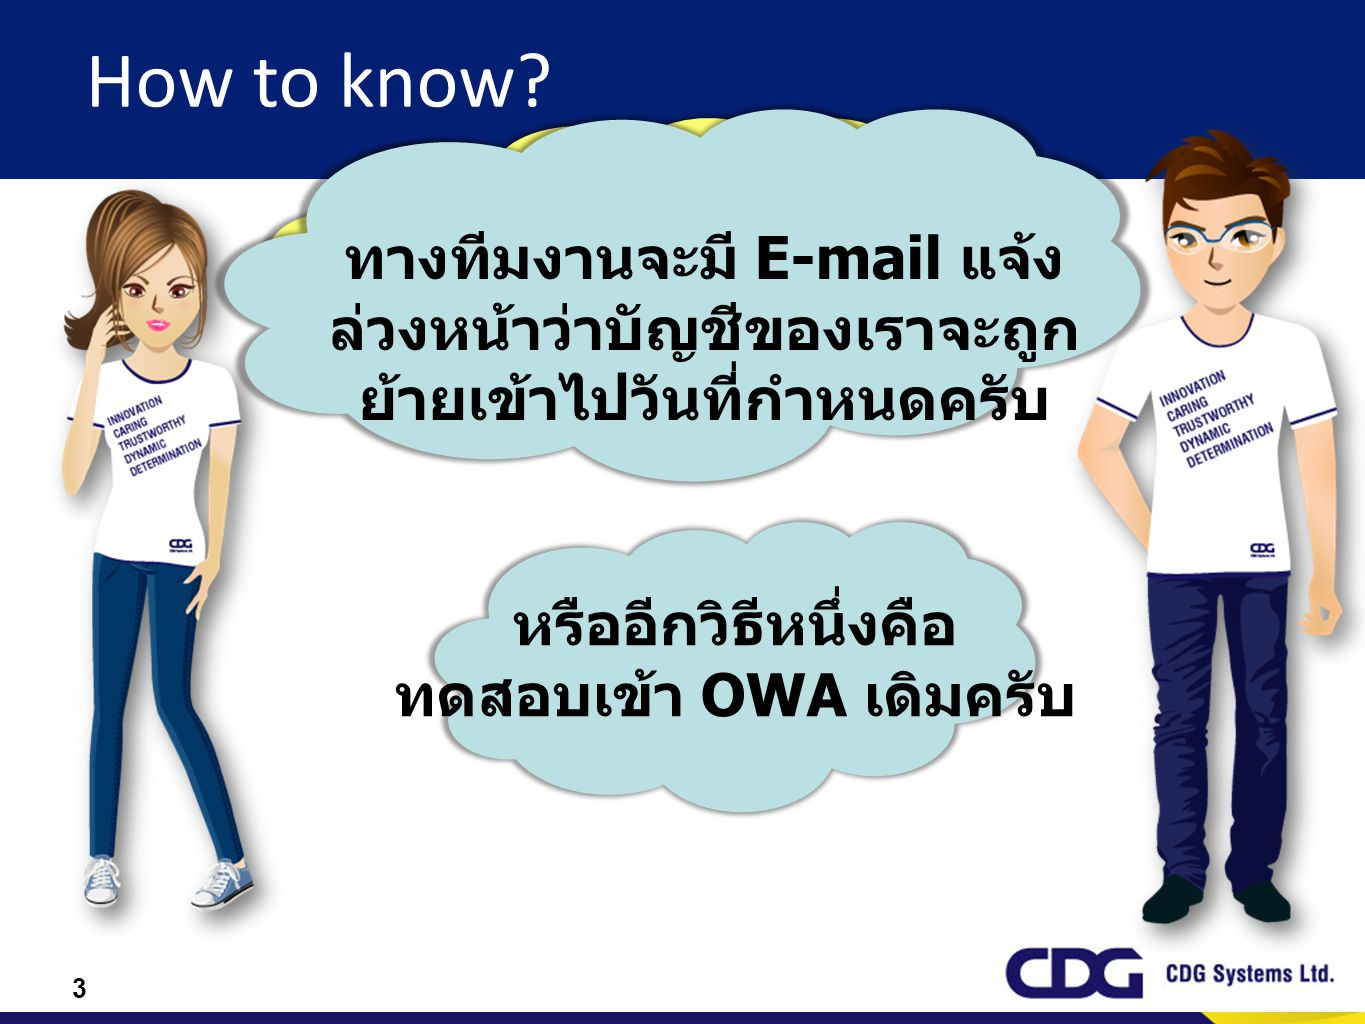 4 How to know?